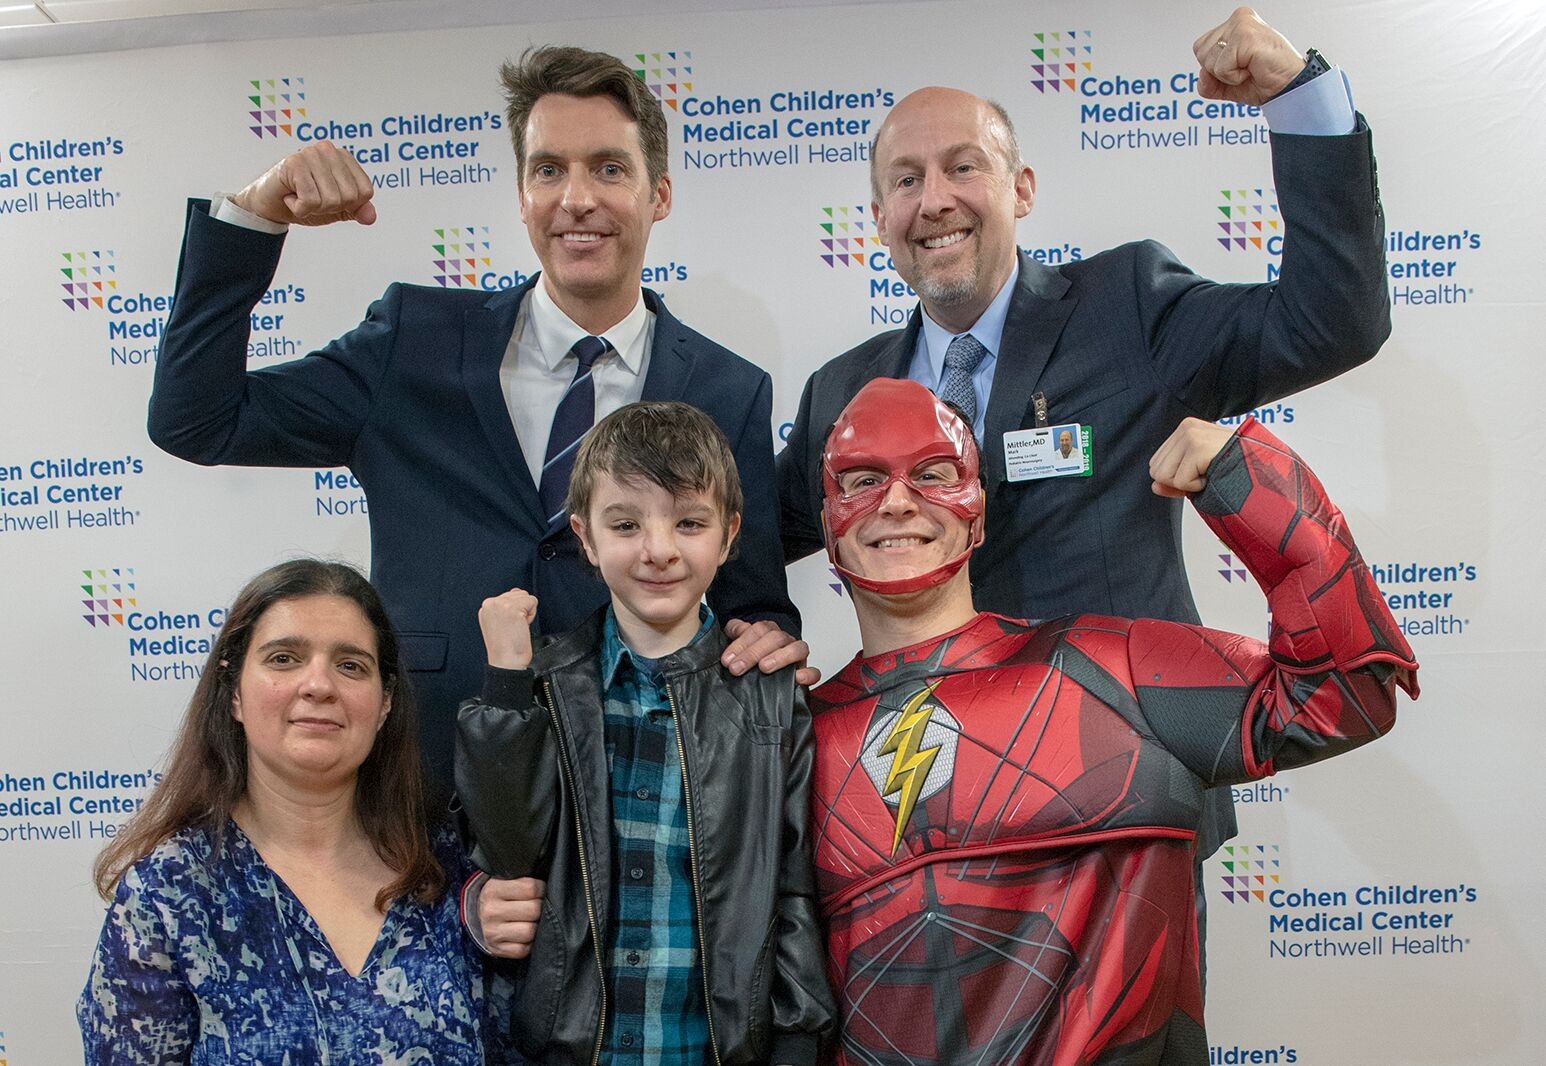 From left: Dr. James Bradley and Dr. Mark Mittler celebrate Simao's return to school with his mom, Lisa, and favorite superhero, the Flash.